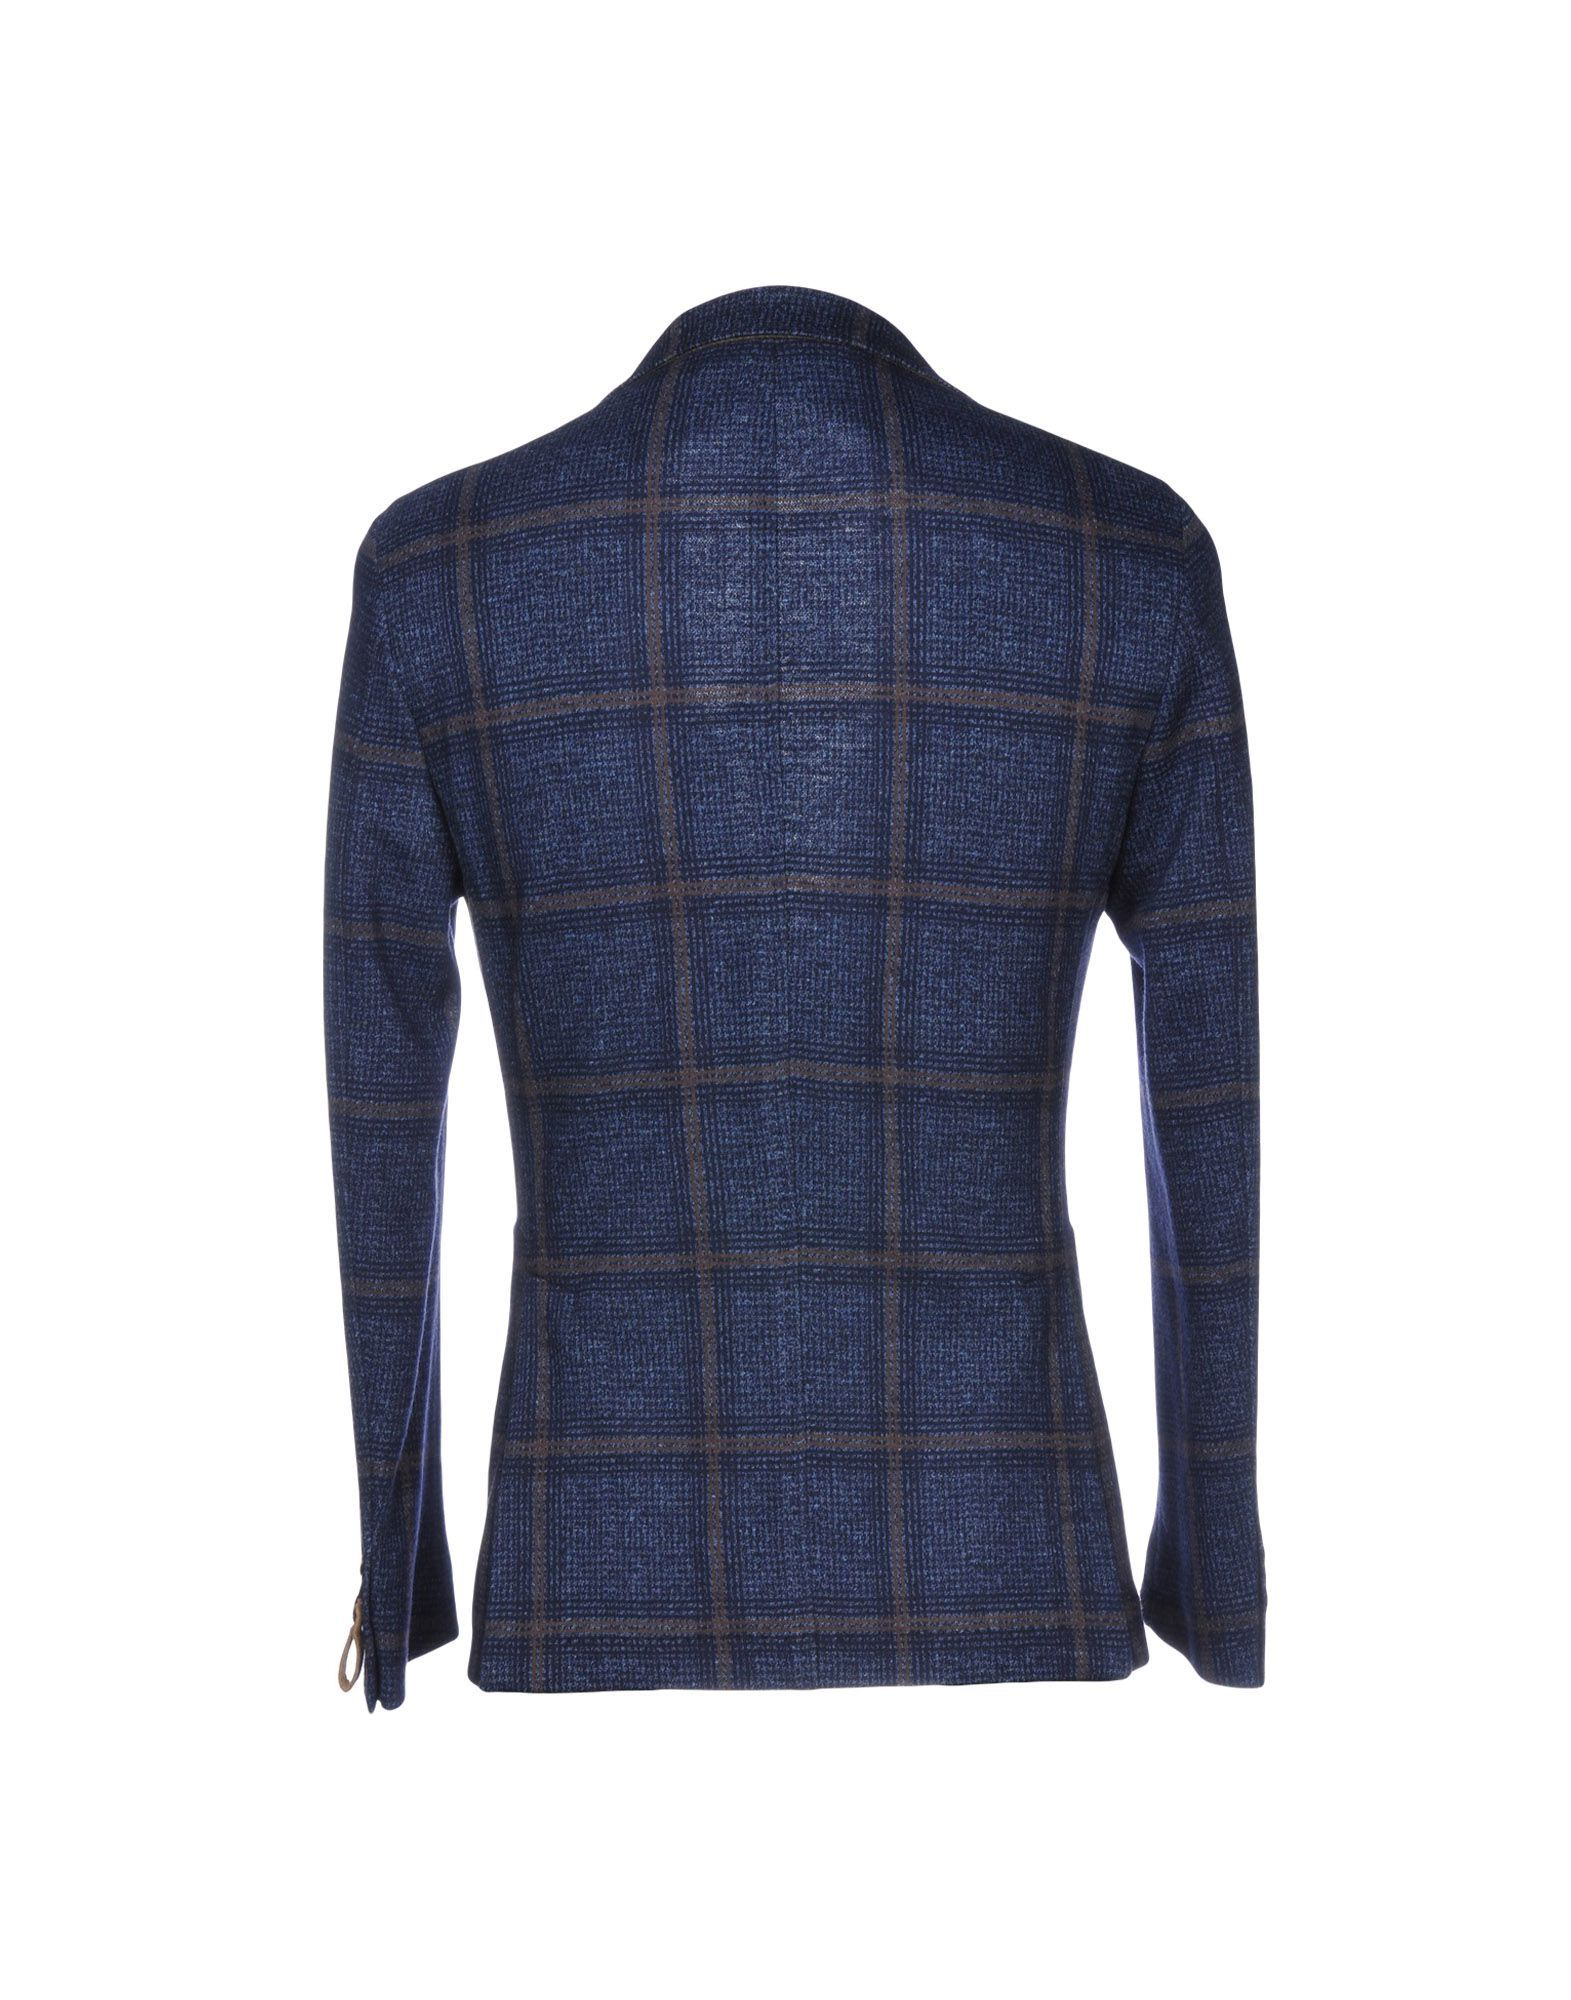 SUITS AND JACKETS Paoloni Dark blue Man Cotton